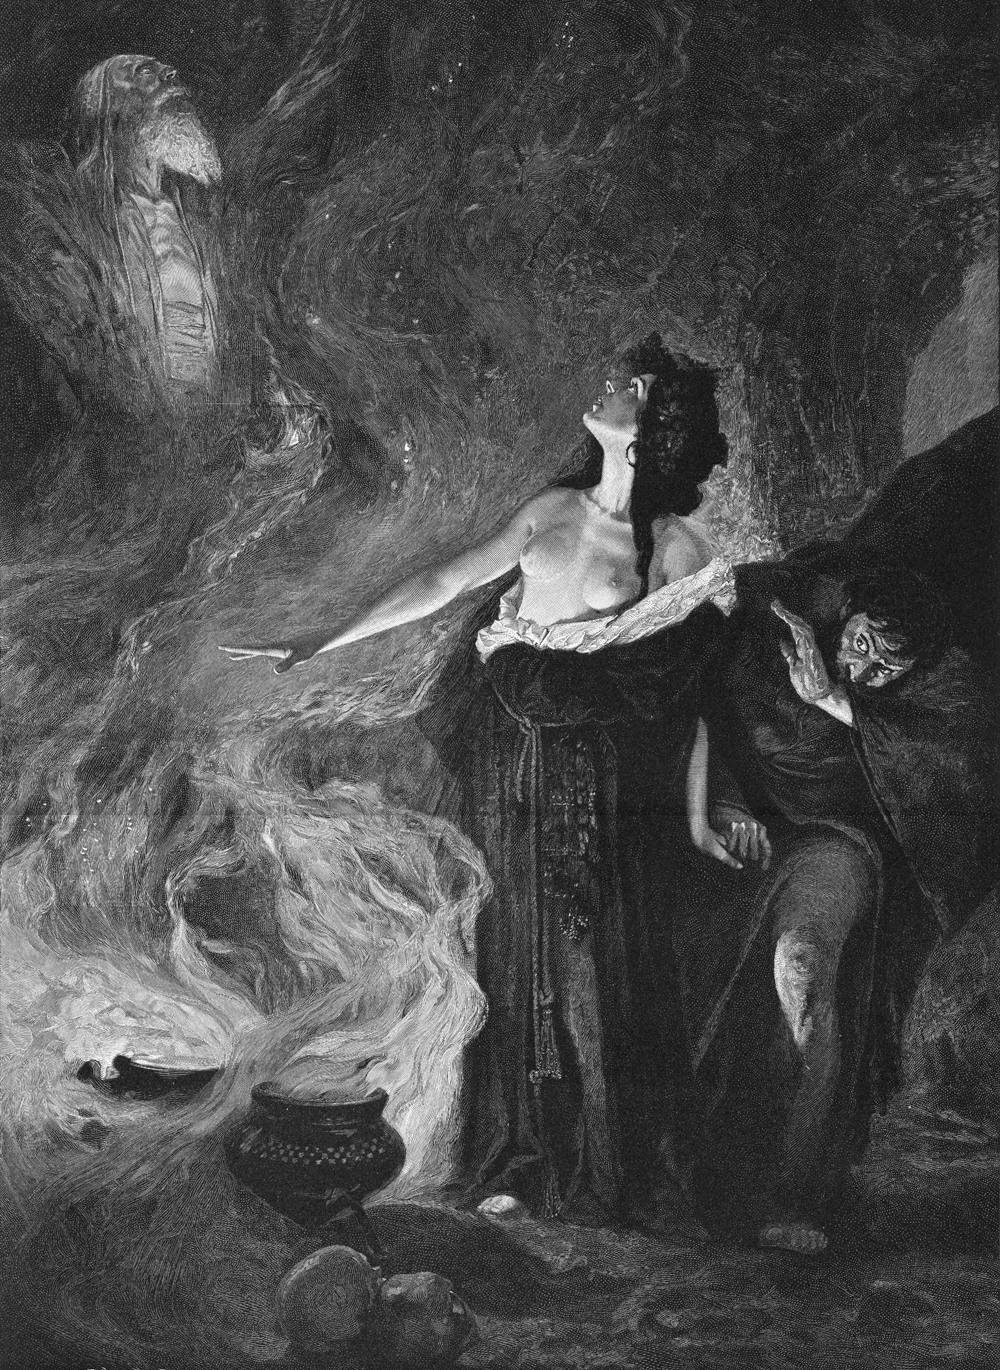 The Witch of Endor conjures up the spirit of Samuel at the request of Saul